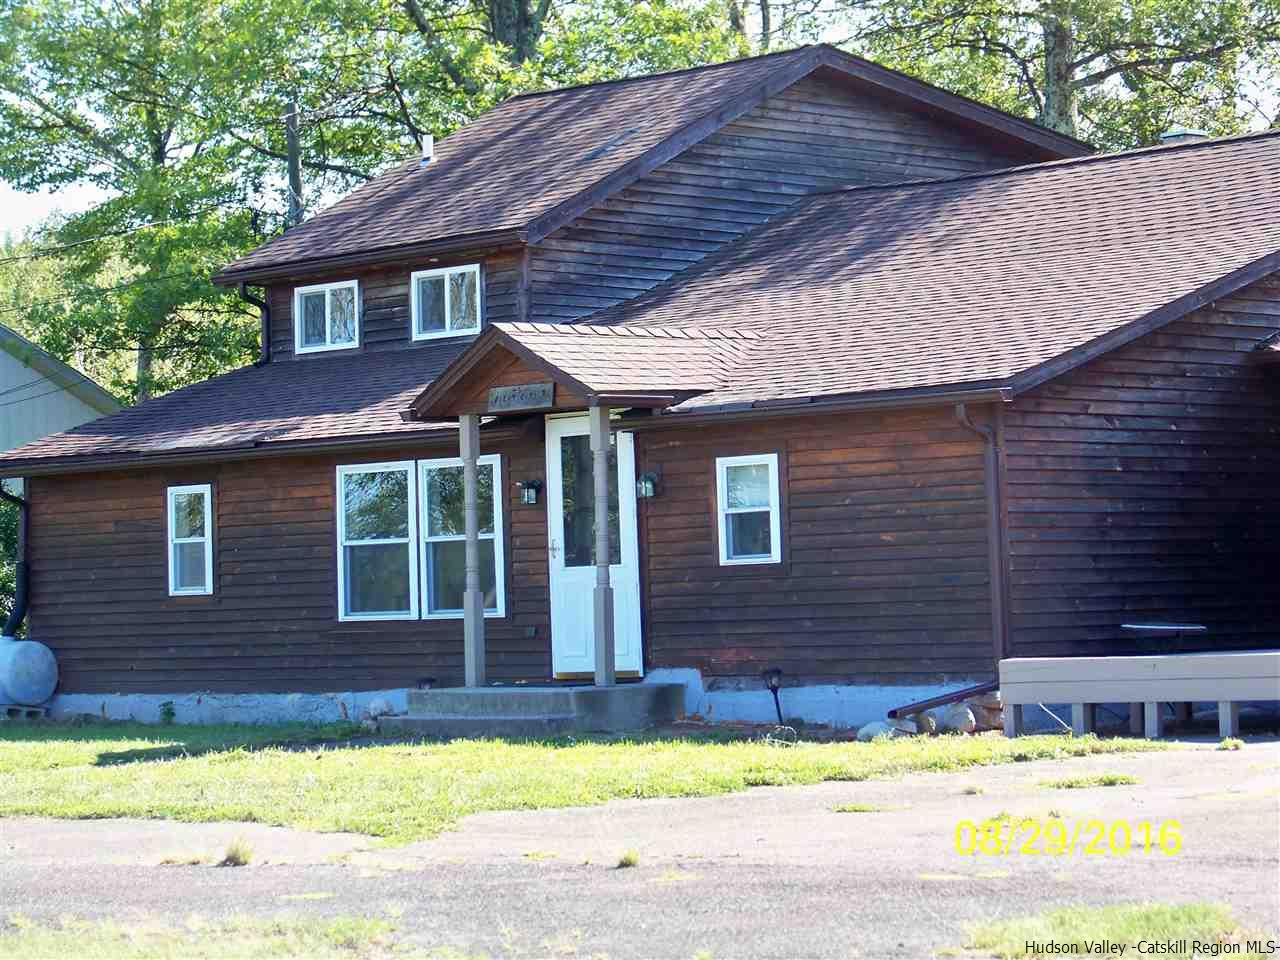 Single Family Home for Sale at 115 Decker Road 115 Decker Road Kerhonkson, New York 12446 United States